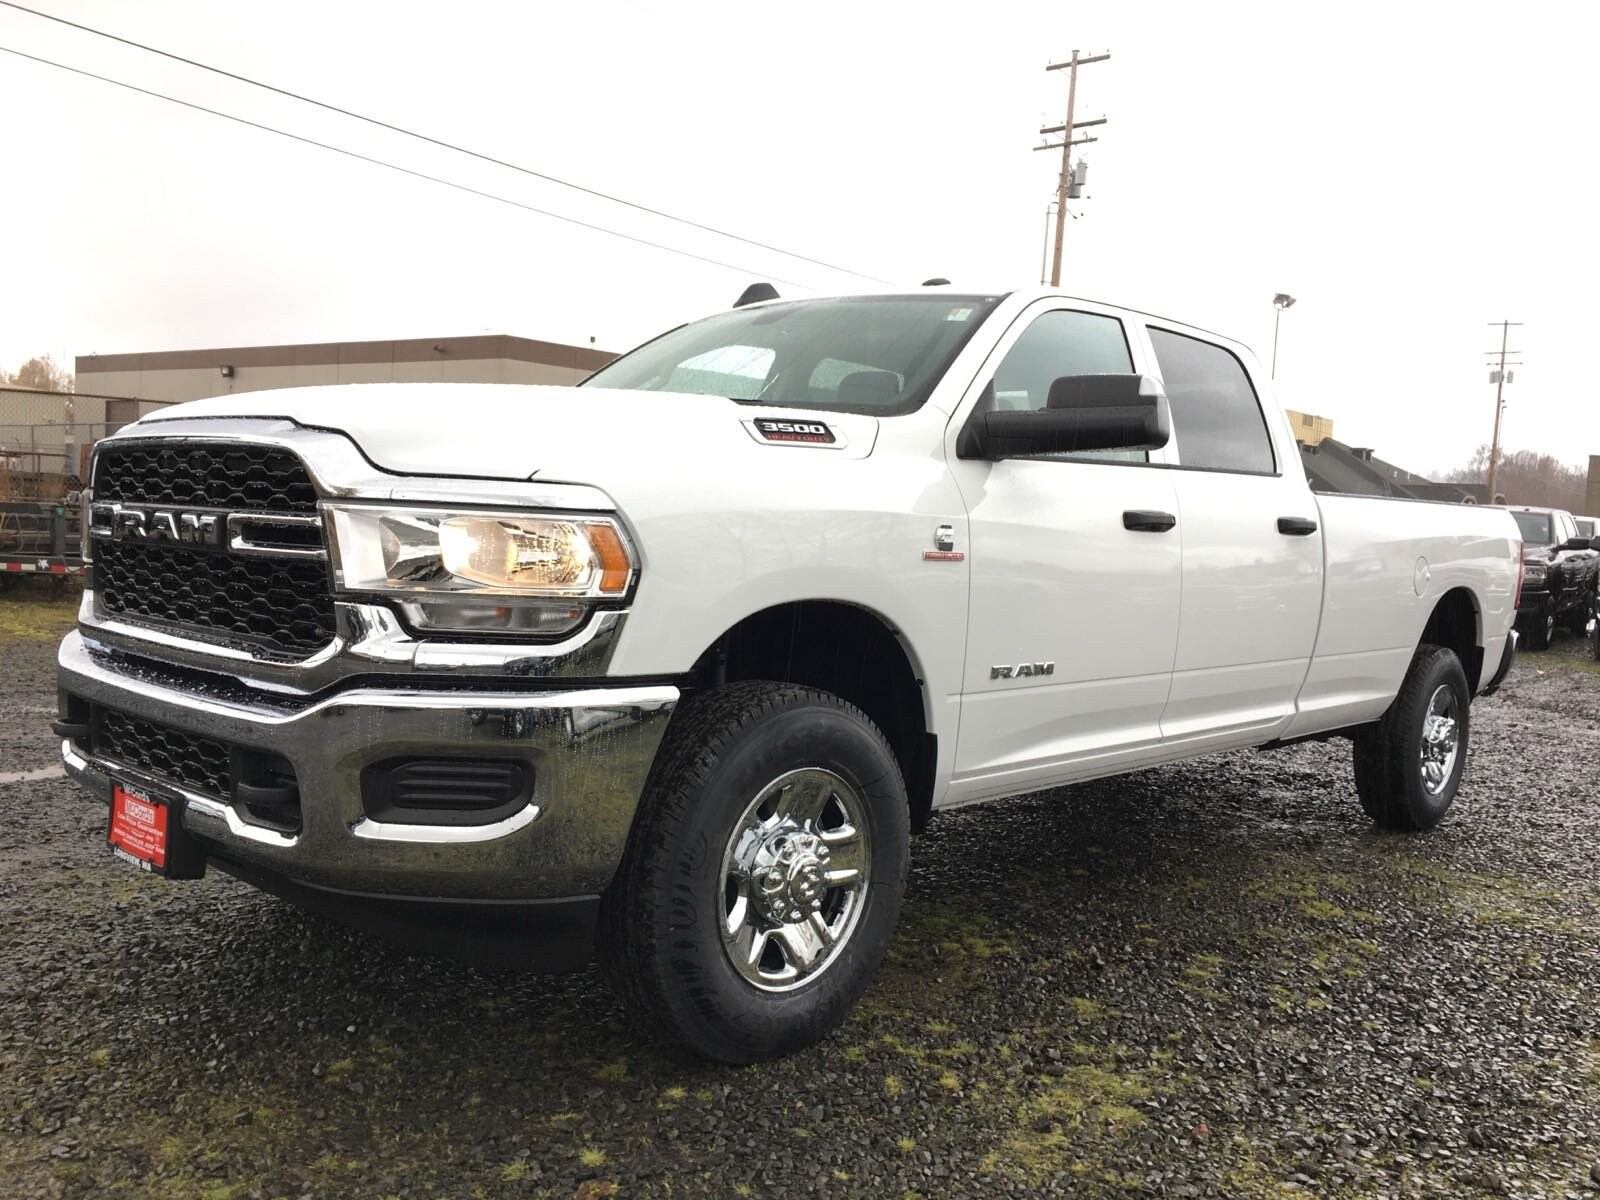 2019 Ram 3500 Crew Cab 4x4, Pickup #R1920 - photo 1